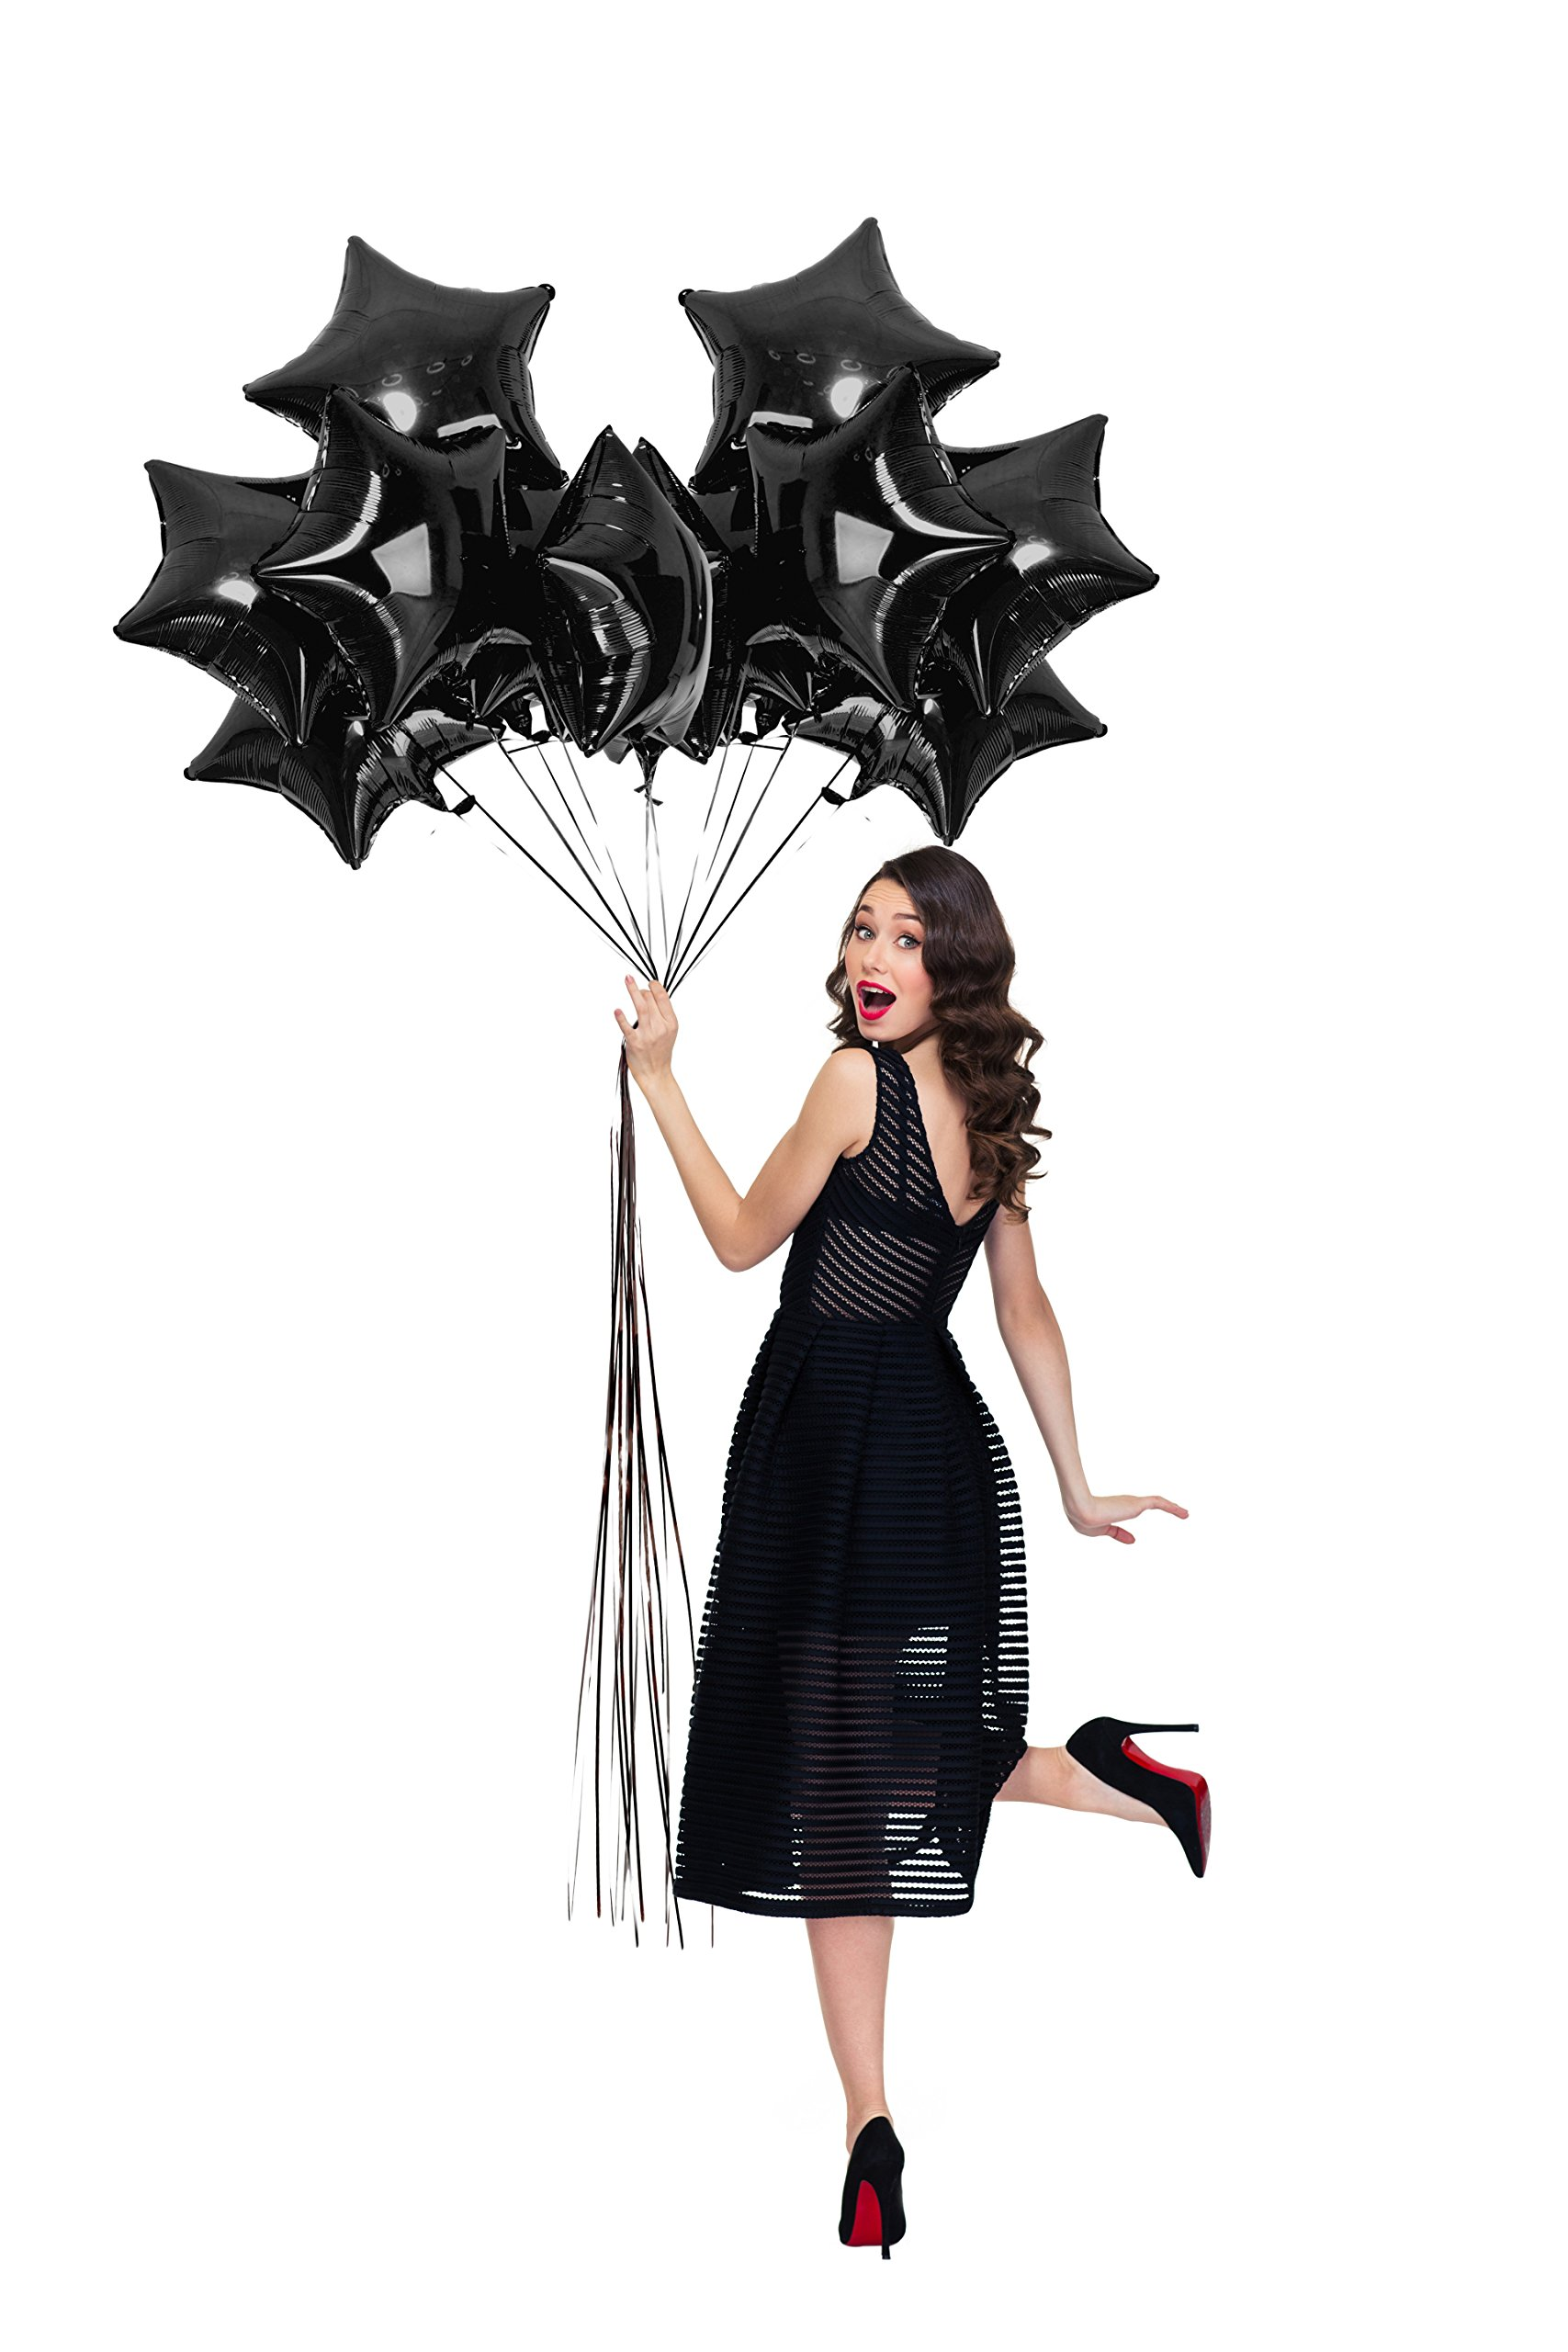 Treasures Gifted Black Star Shape Foil Balloons 18 Inch Sparkly Mylar 12 Pack for Birthday Wedding Graduation New Year Eve Party Supplies